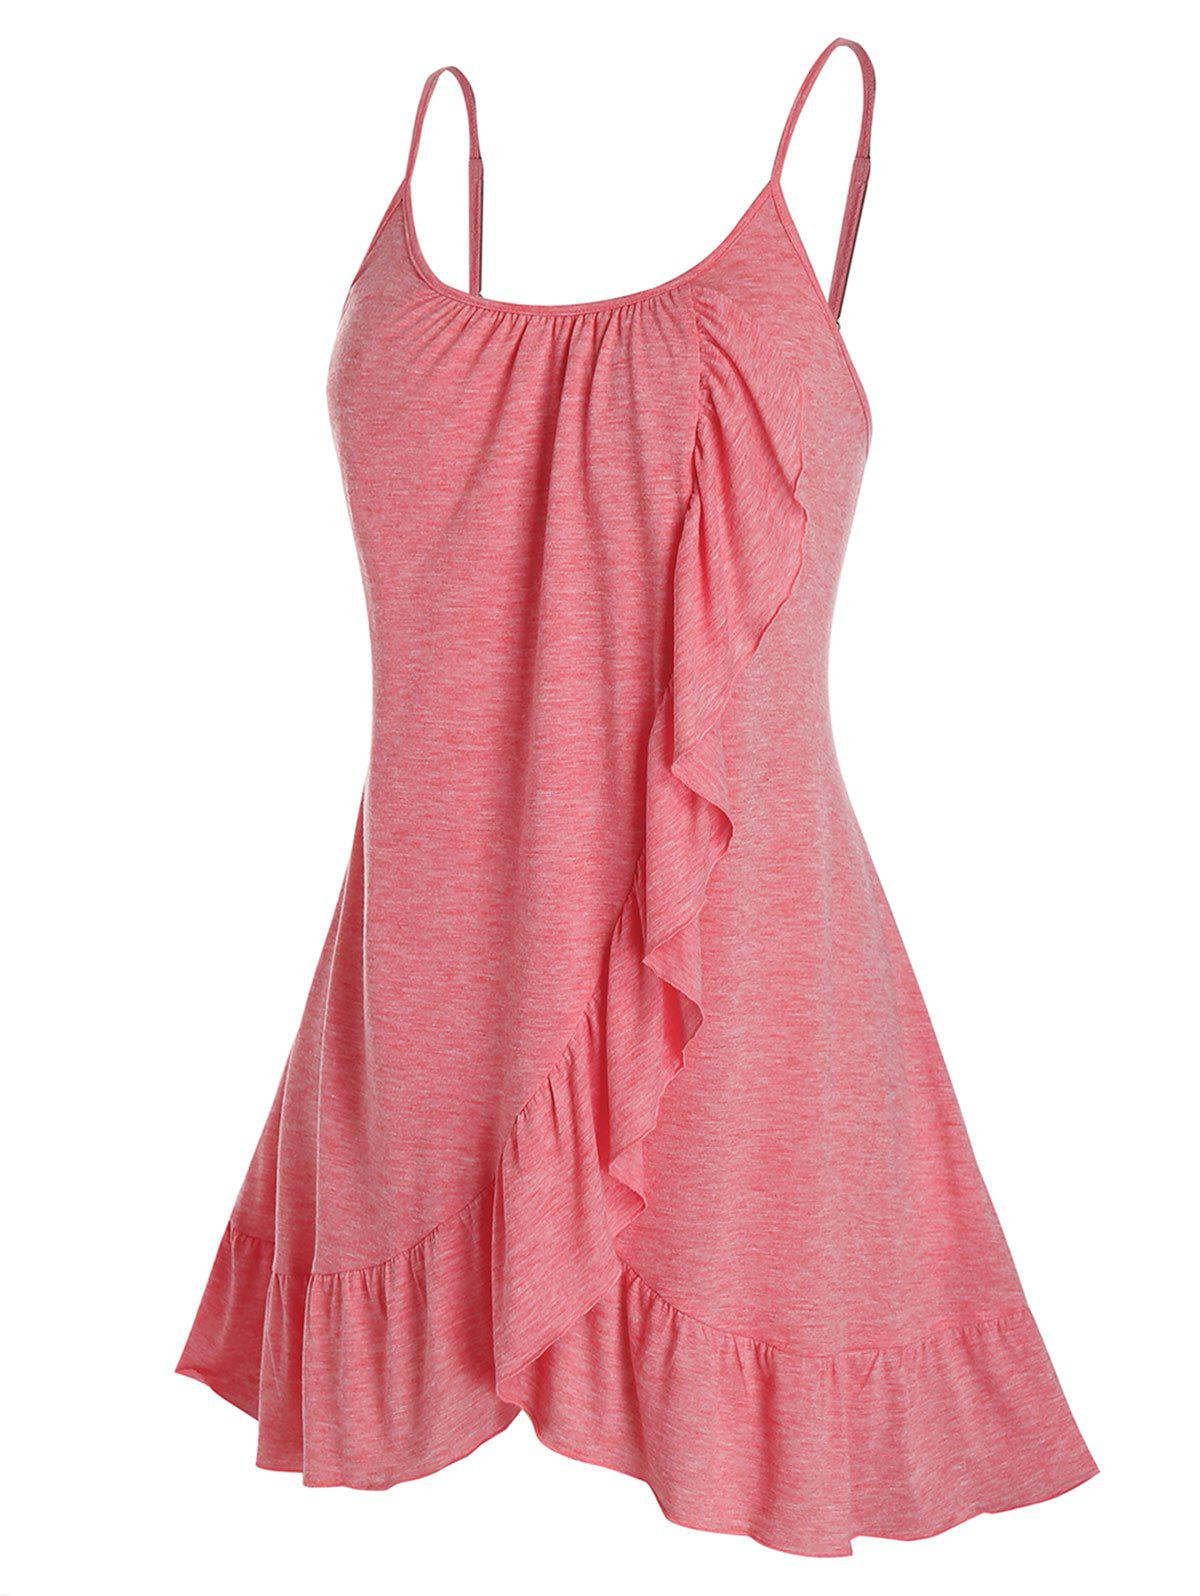 New Plus Size Overlap Flounce Backless Tunic Cami Top